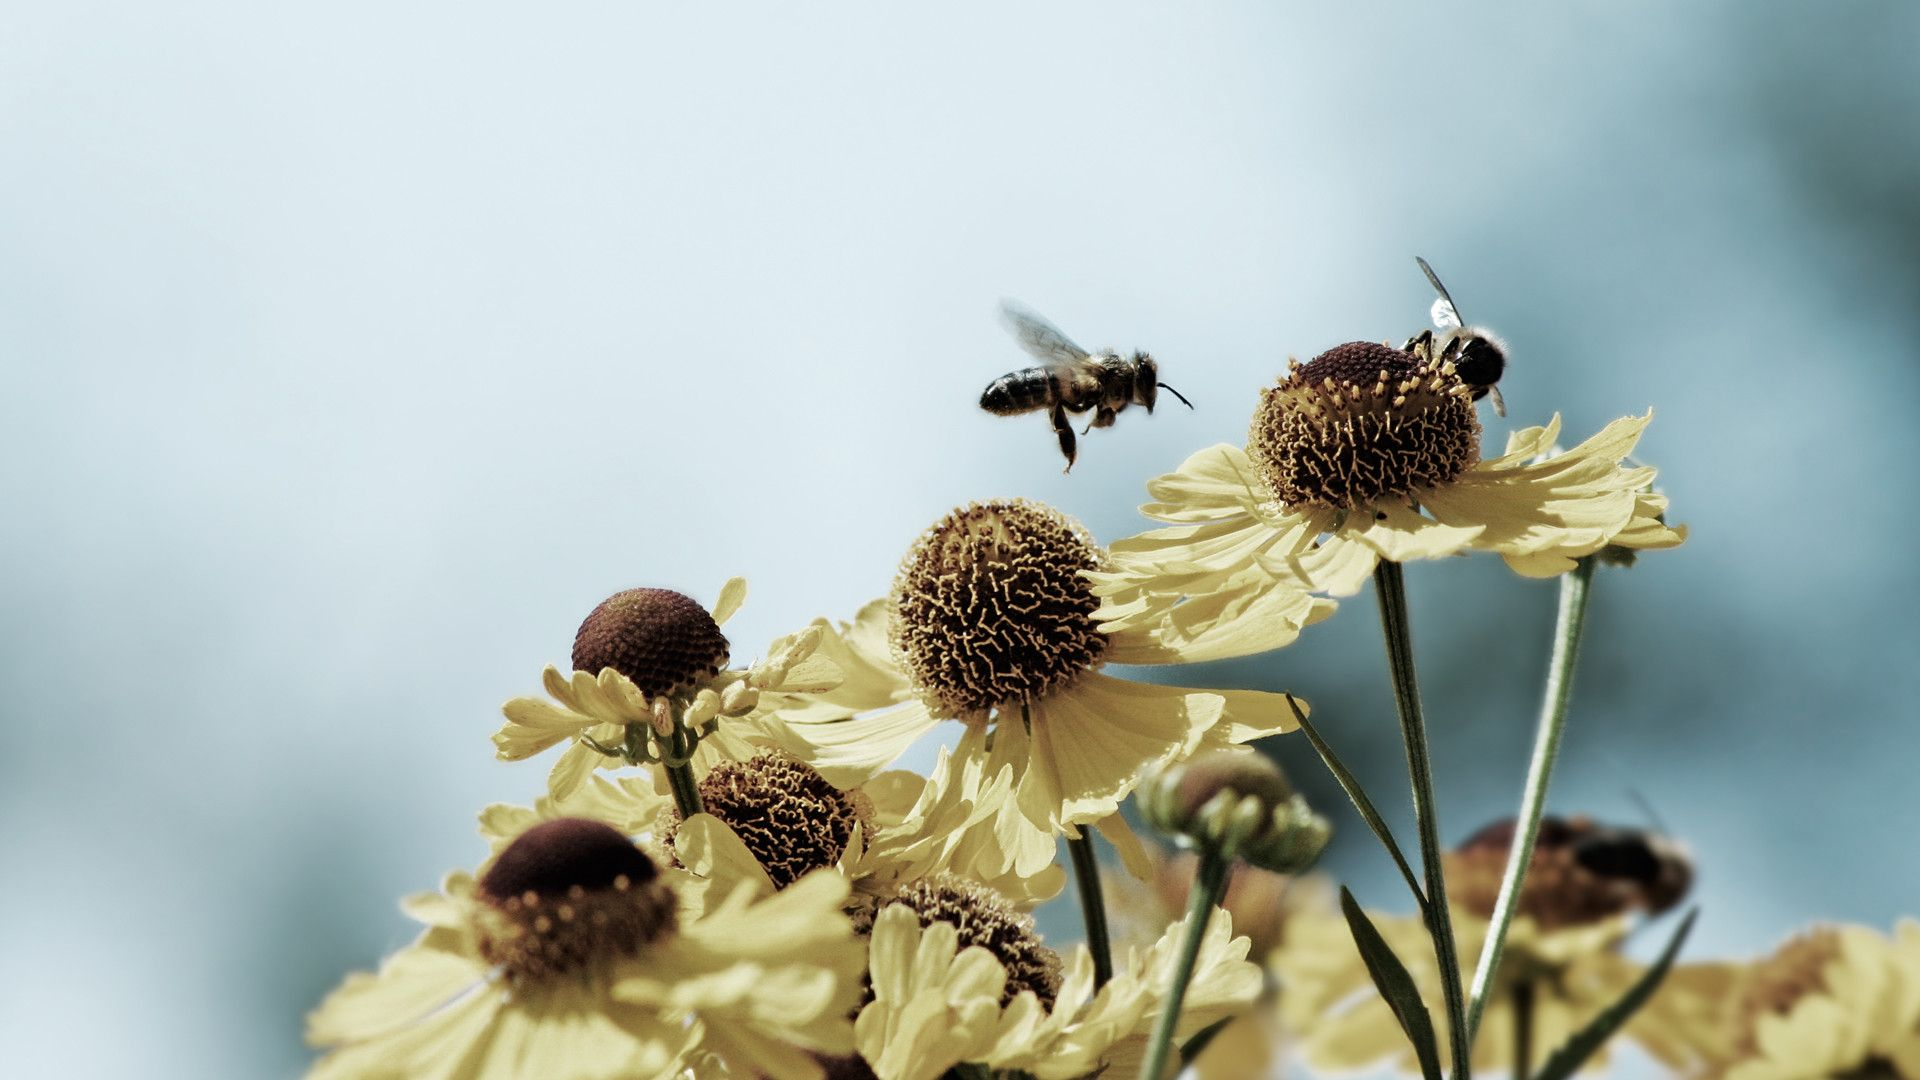 show me a picture of a honey bee